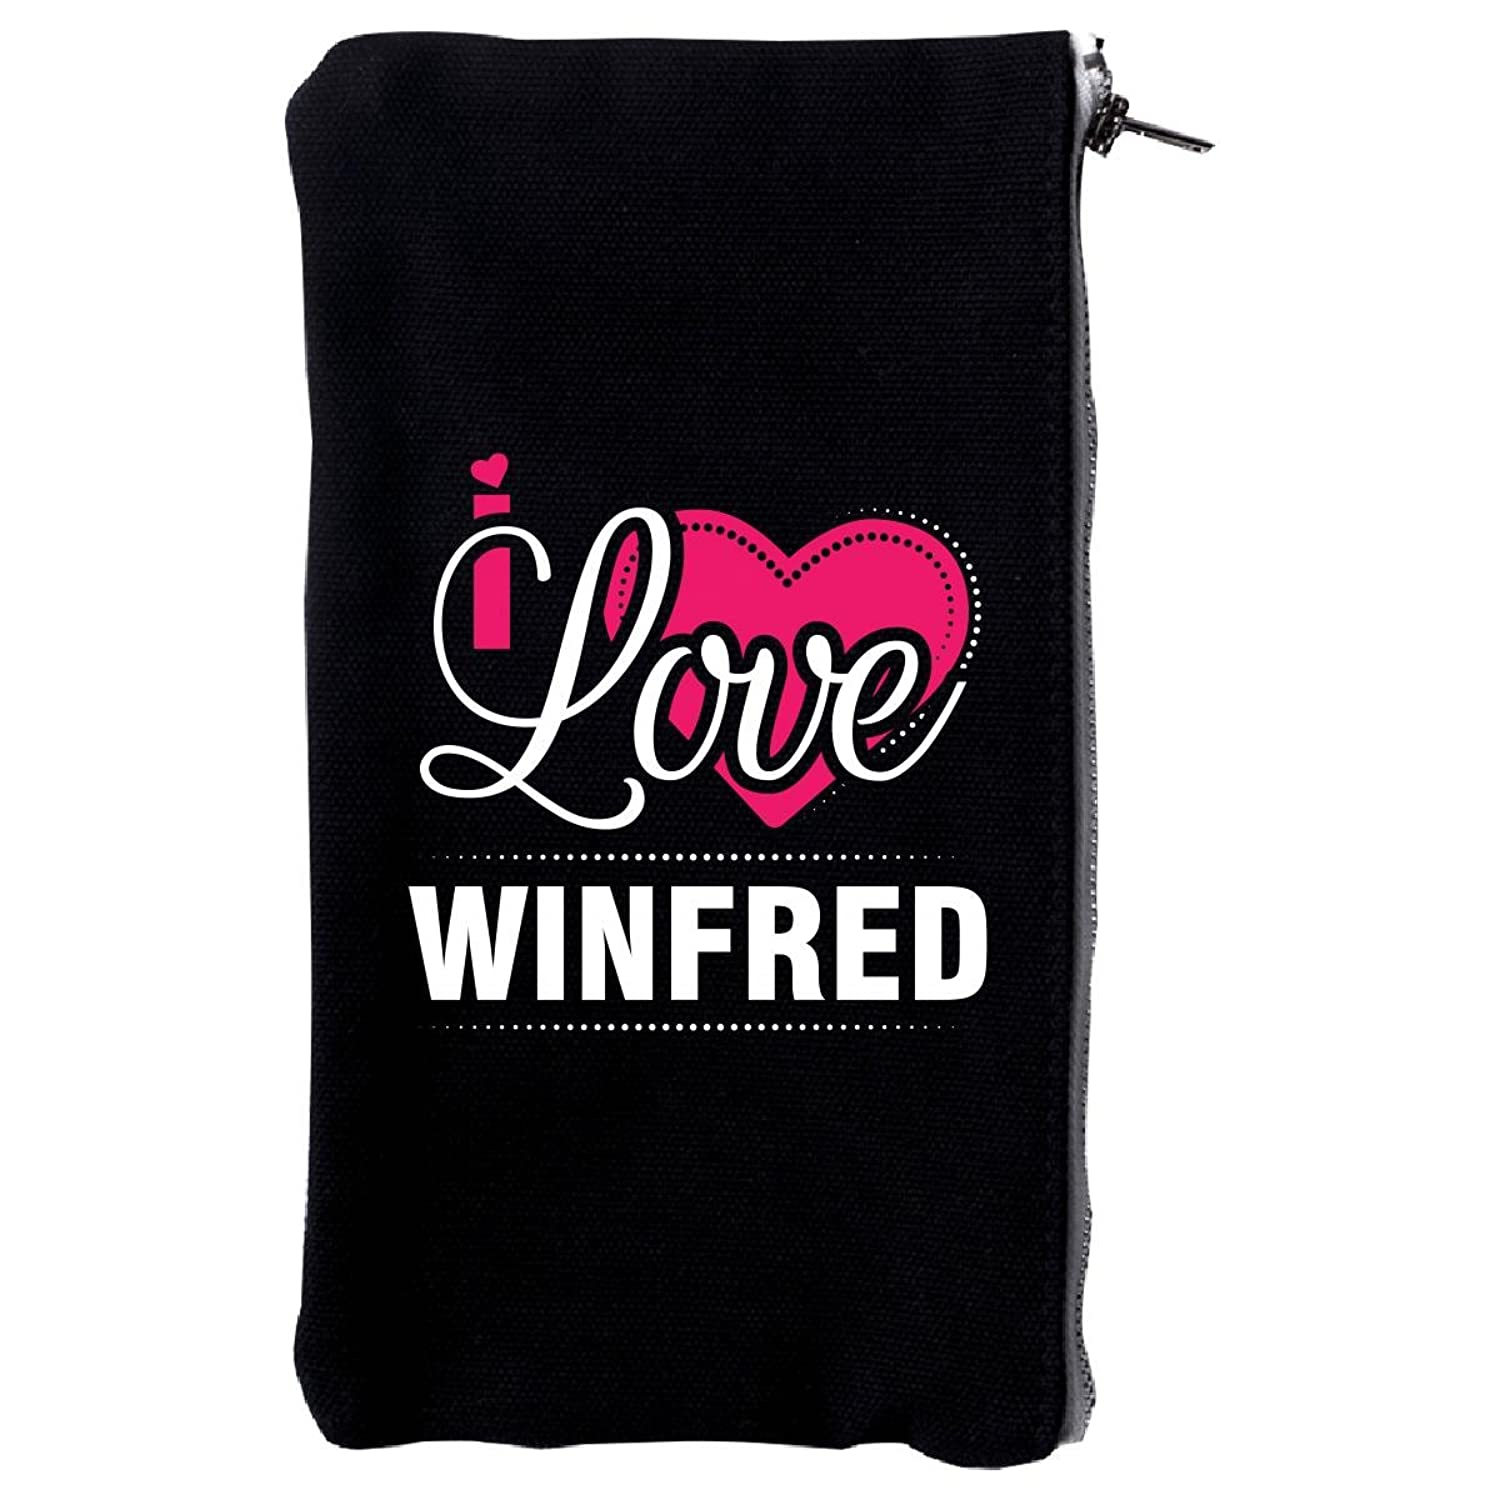 I Love Winfred - Cool Gift For Winfred From Girlfriend - Make Up Case